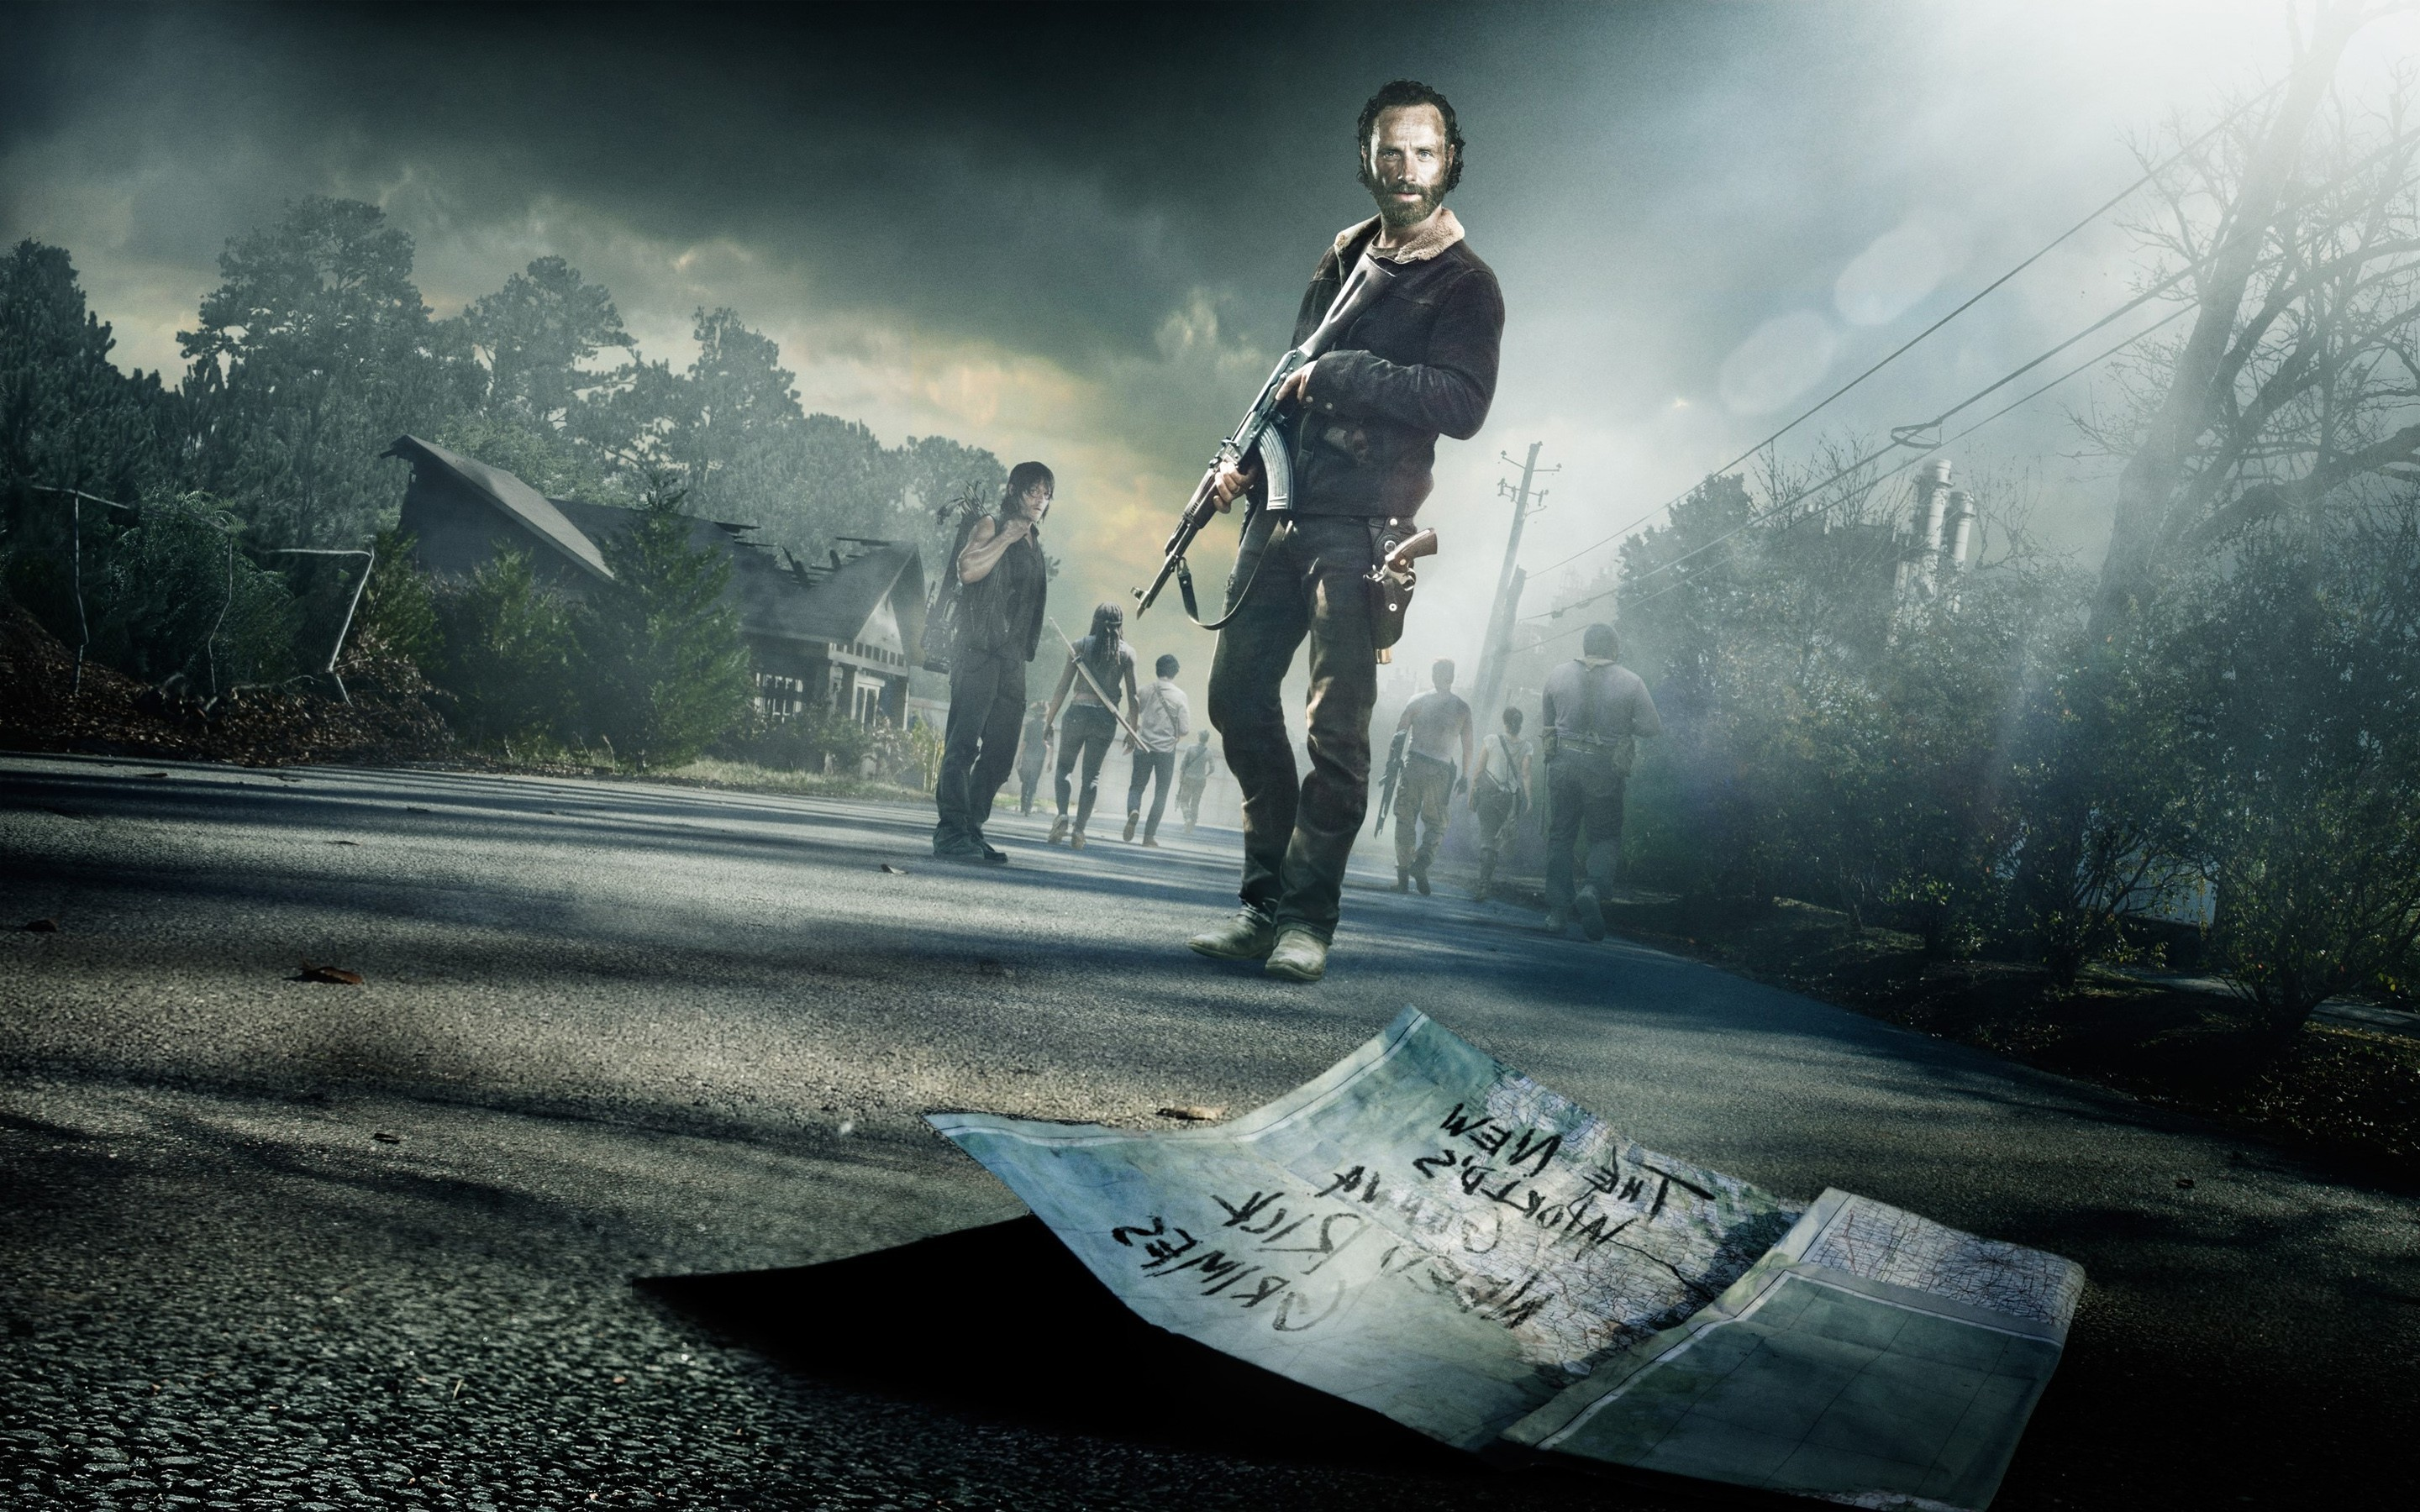 2880x1800 1080x1920 Movies The Walking Dead Rick Grimes Yellow Series Poster Zombies  Horror Action AMC City Skyline Road Highway HD iPhone 6 plus Wallpaper